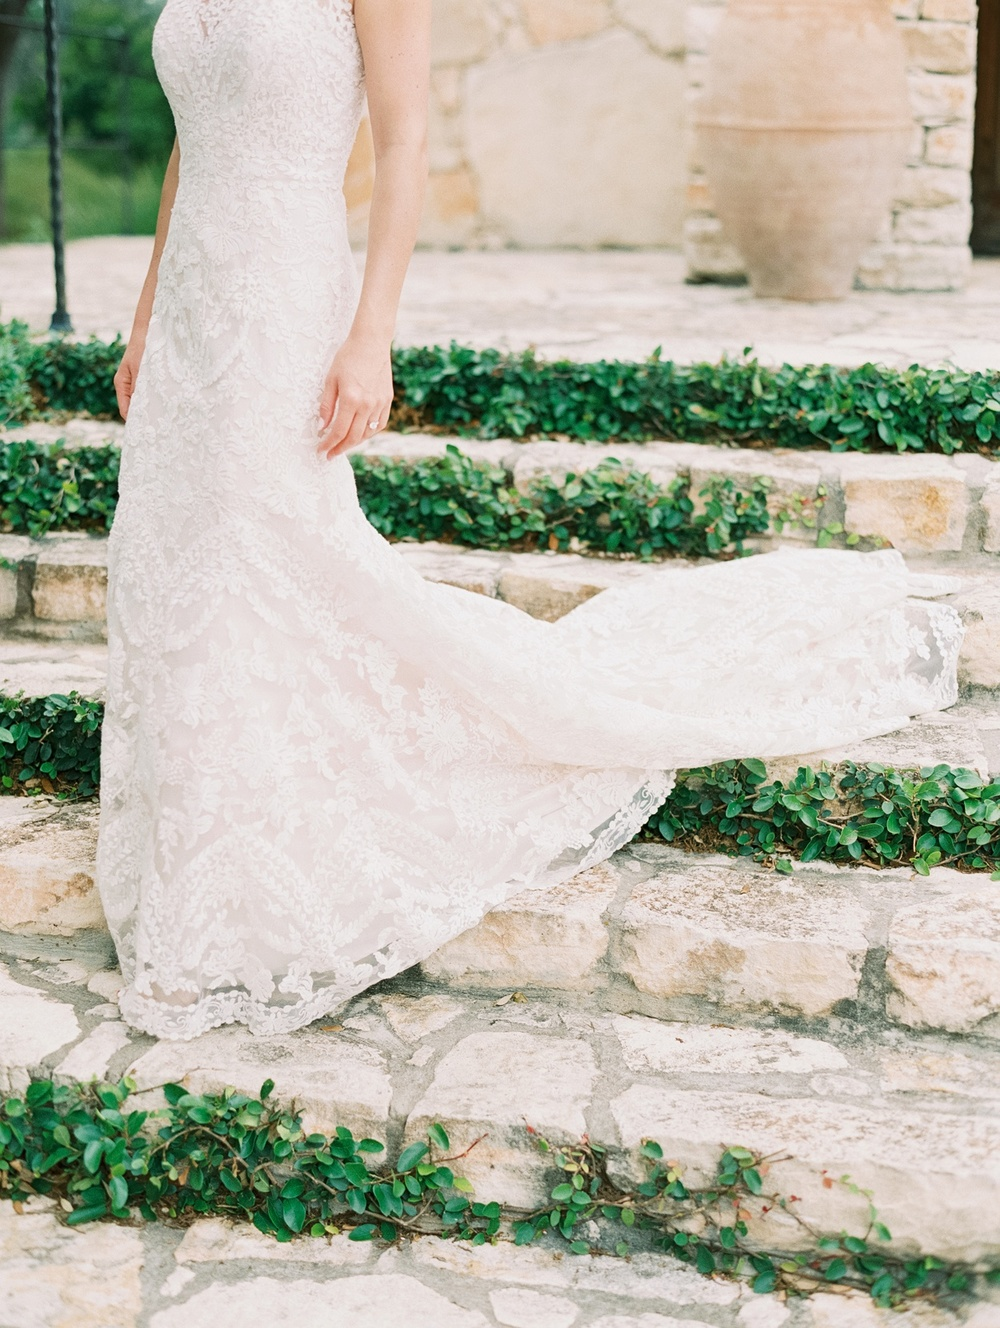 Becca Lea Photography, Austin Wedding Photographer, Austin Film photographer, BHLDN wedding dress, Eddy K bridal, Whim Florals, Lola Beauty, Camp Lucy Wedding